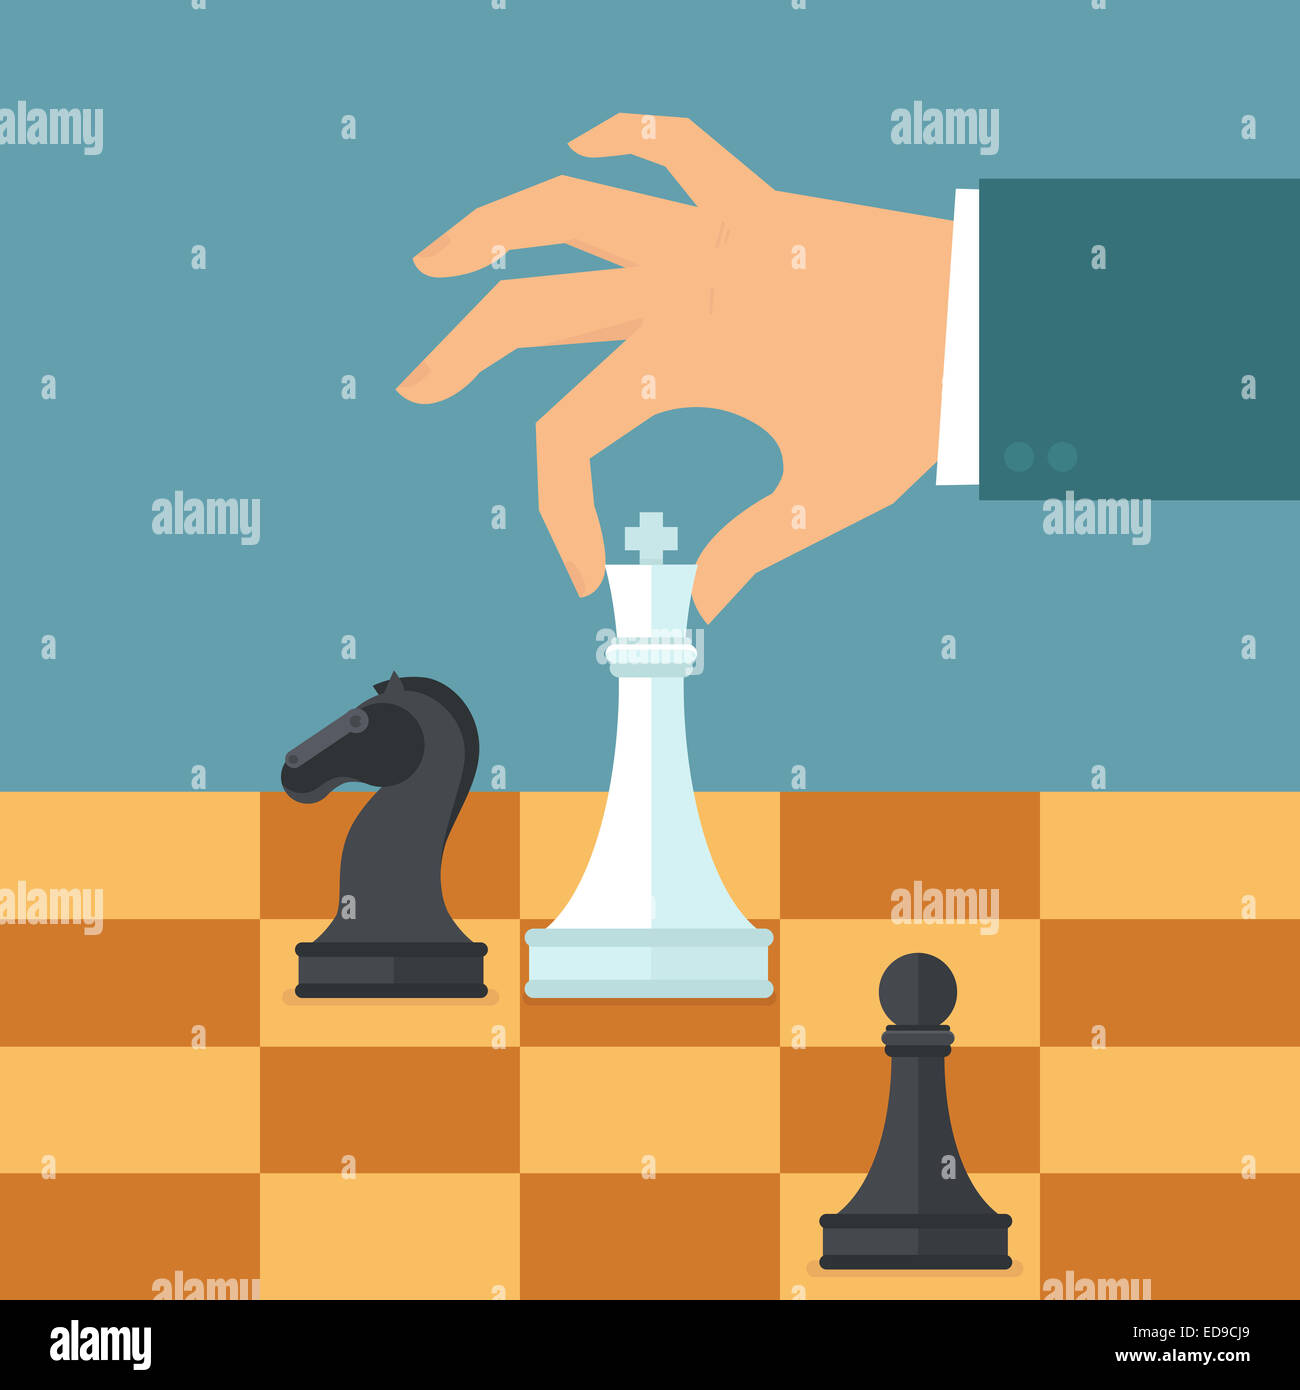 Business strategy concept in flat style - male hand holding chess figure - planning and management - Stock Image